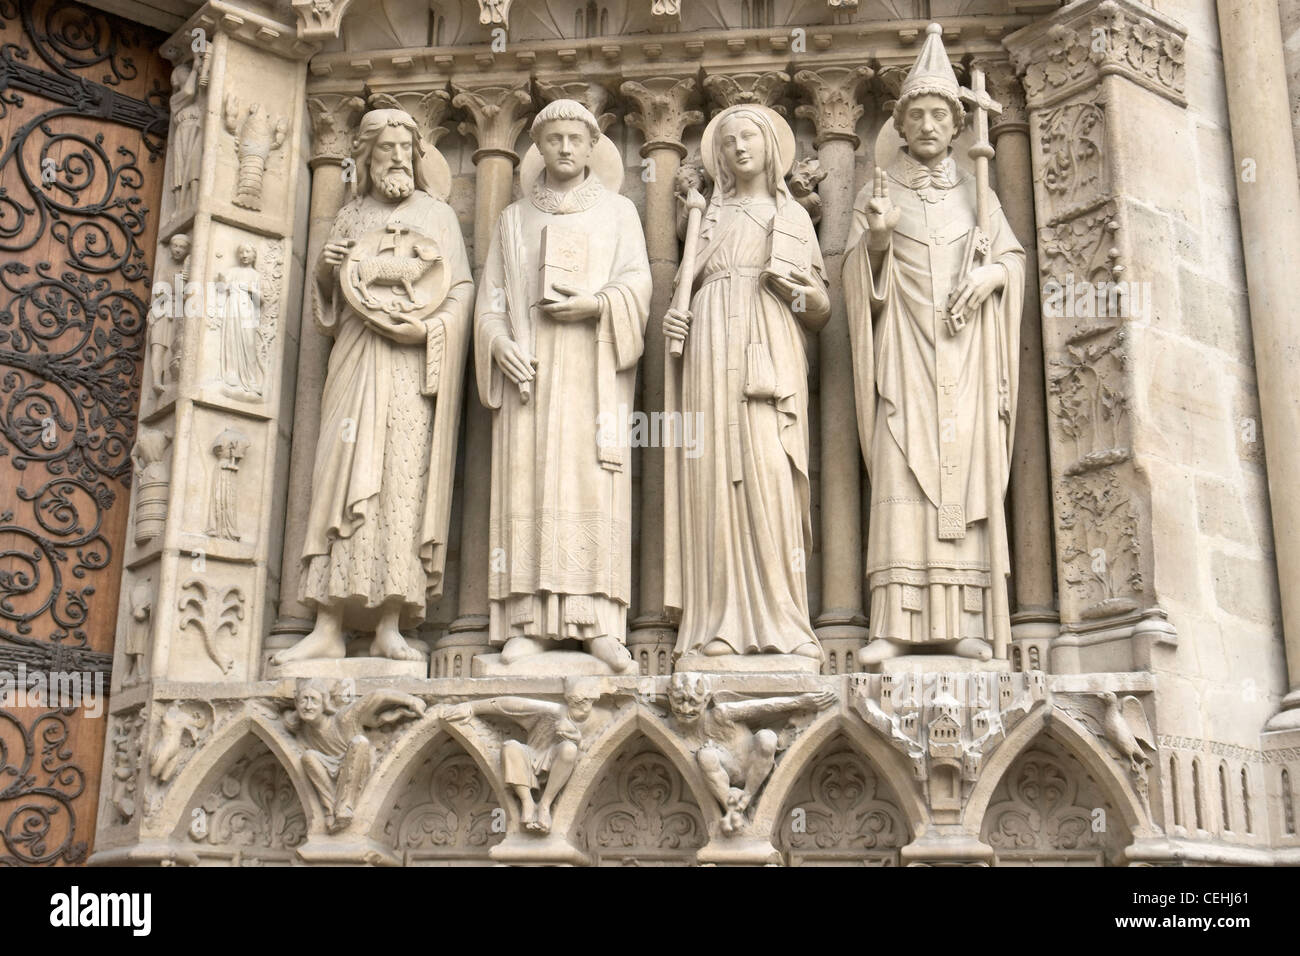 Saint John the Baptist, Saint Stephen, Sainte Genevieve, and Saint Sylvester - Stock Image